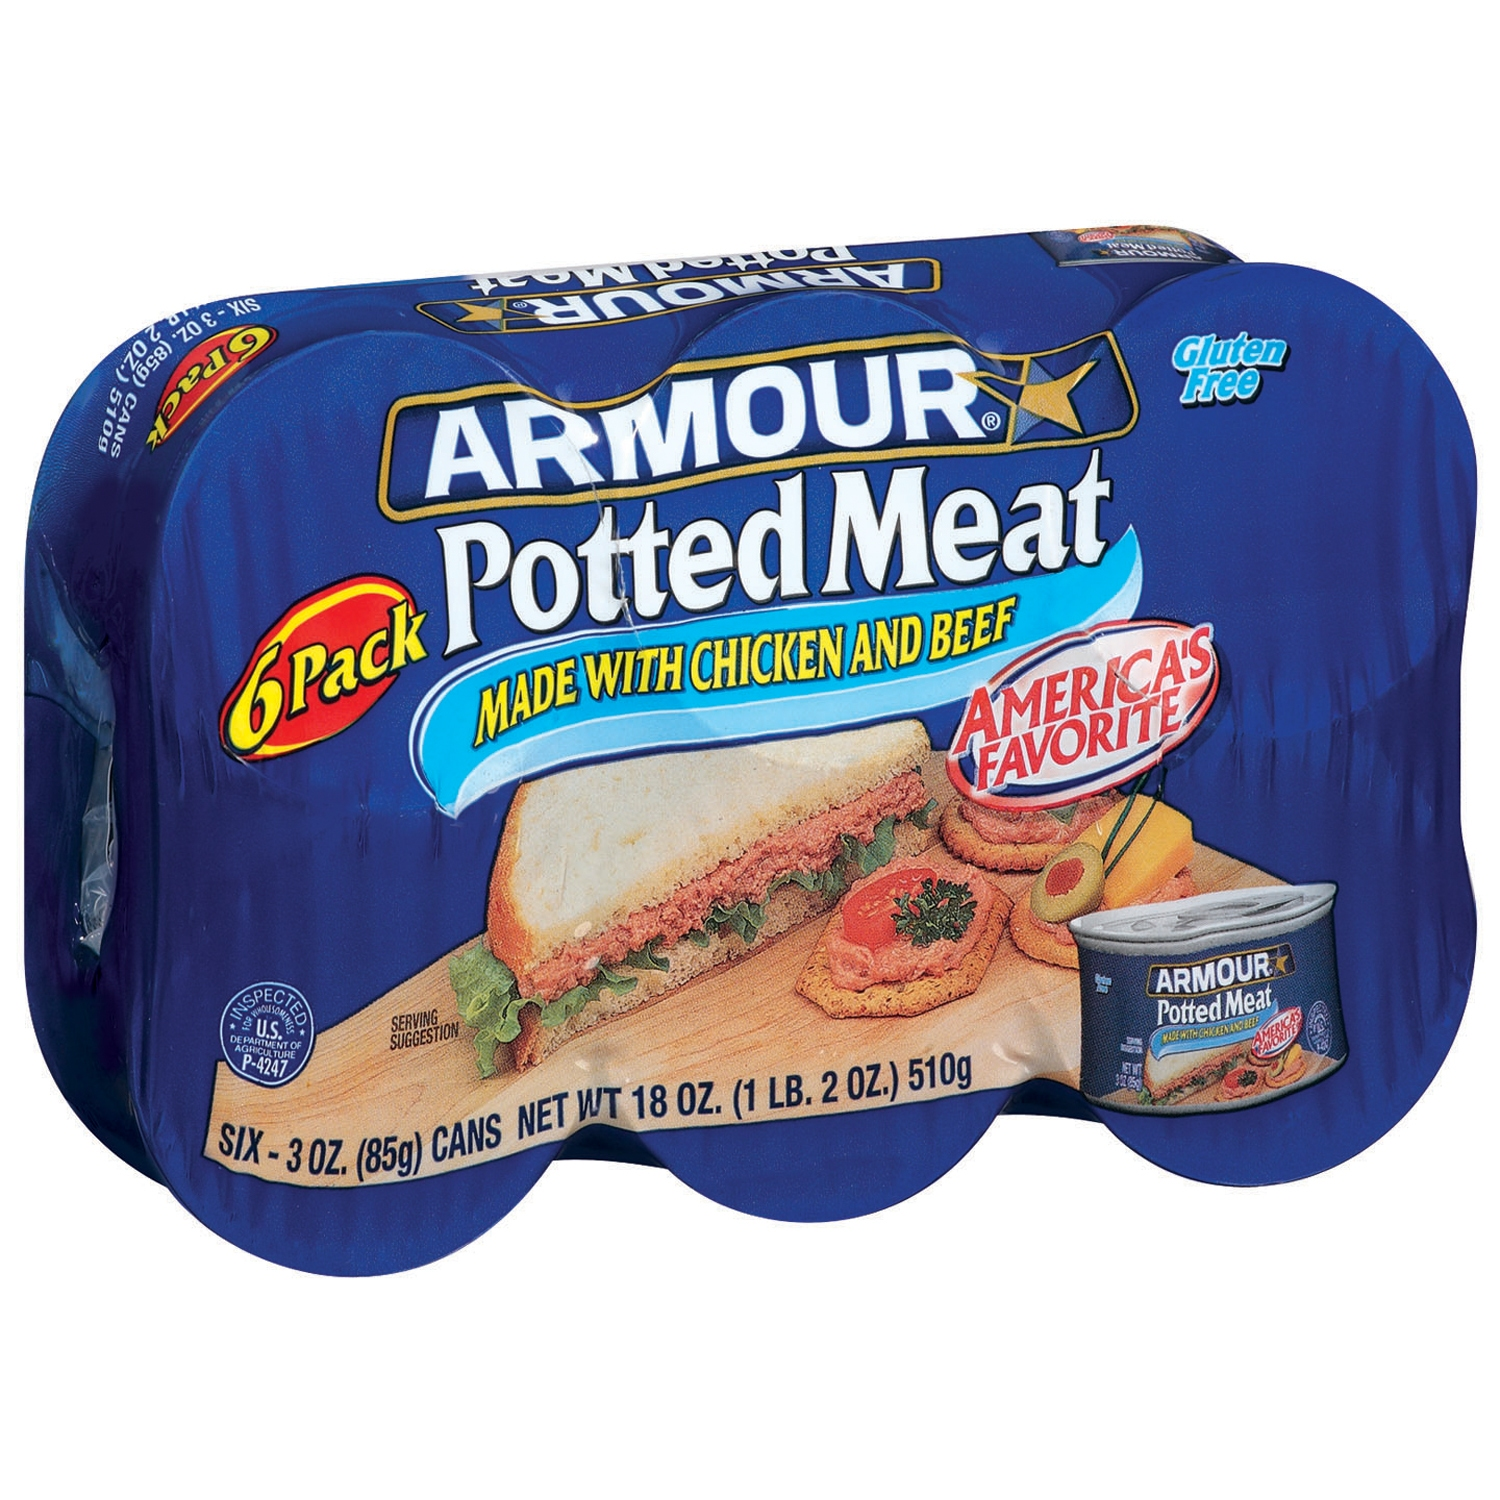 Armour Made W Chicken & Beef Potted Meat 18 Oz Package by Pinnacle Foods Group, Llc